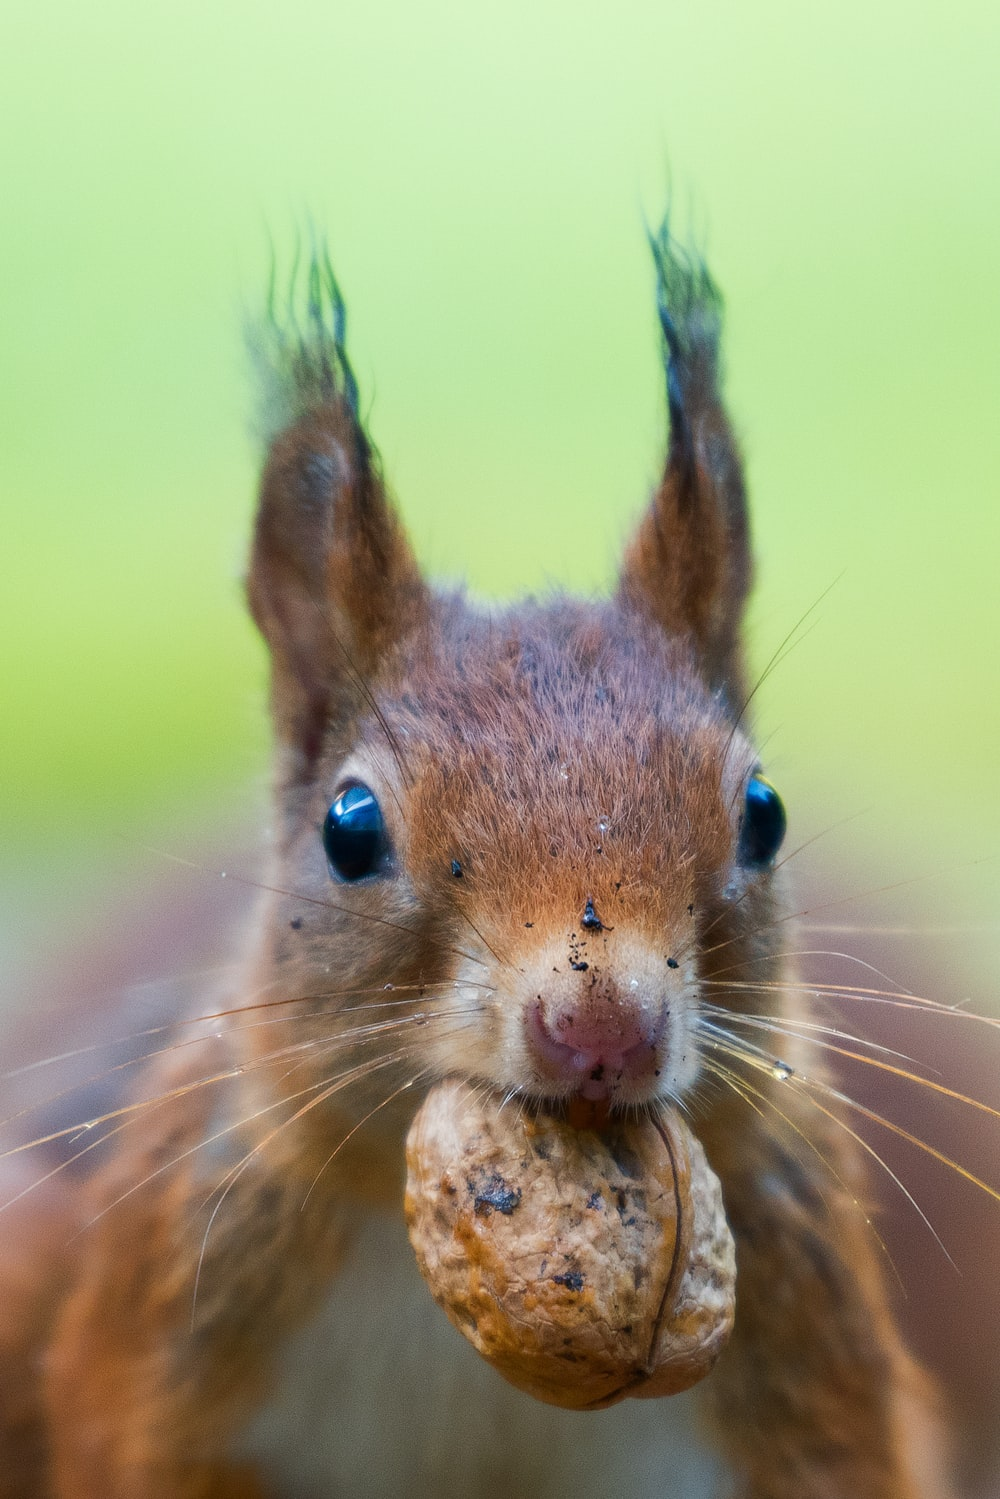 focus photo of squirrel bating a brown walnut